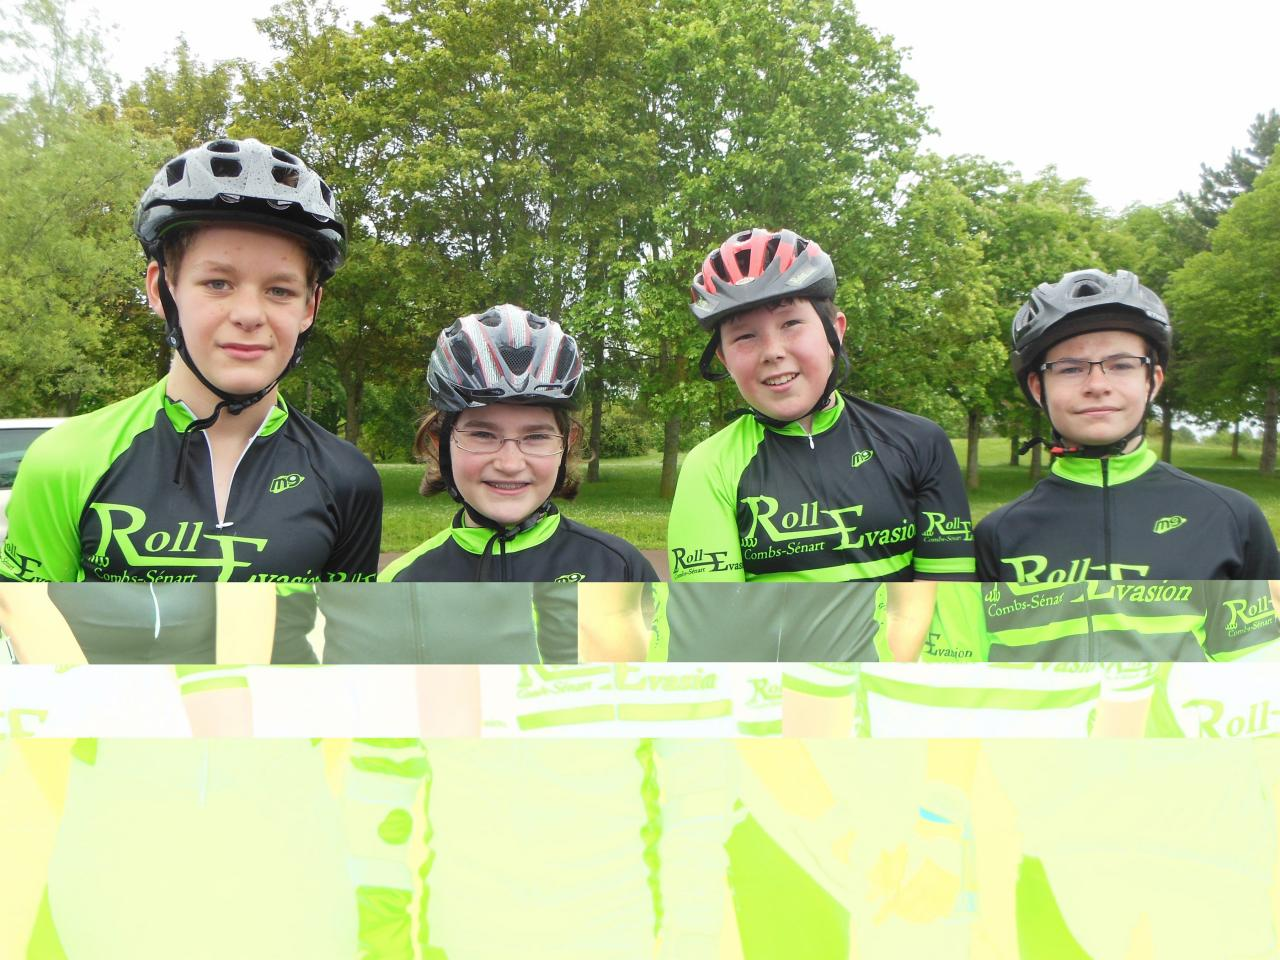 RollEvasion - 6hTroyes 2016 - 41